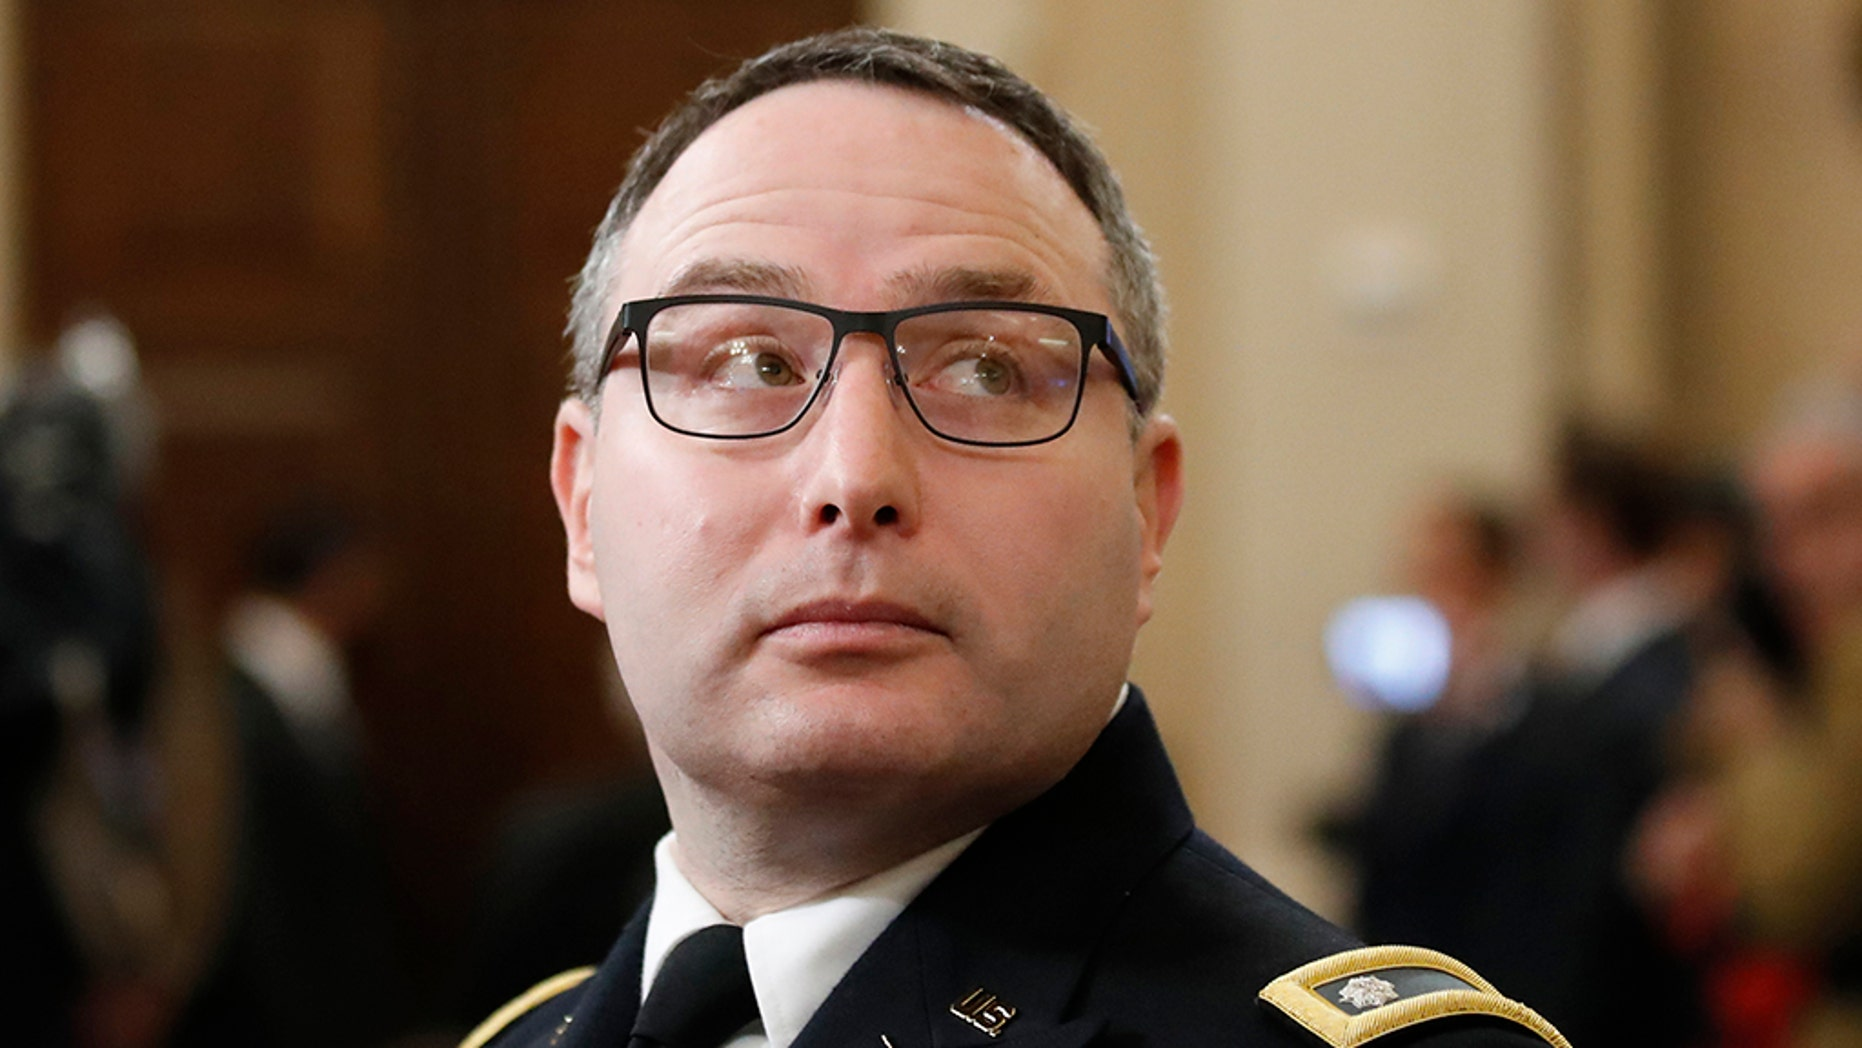 Then-National Security Council aide Lt. Col. Alexander Vindman arrives to testify before the House Intelligence Committee on Capitol Hill in Washington, Tuesday, Nov. 19, 2019, during a public impeachment hearing of President Donald Trump's efforts to tie U.S. aid for Ukraine to investigations of his political opponents. (AP Photo/Alex Brandon)